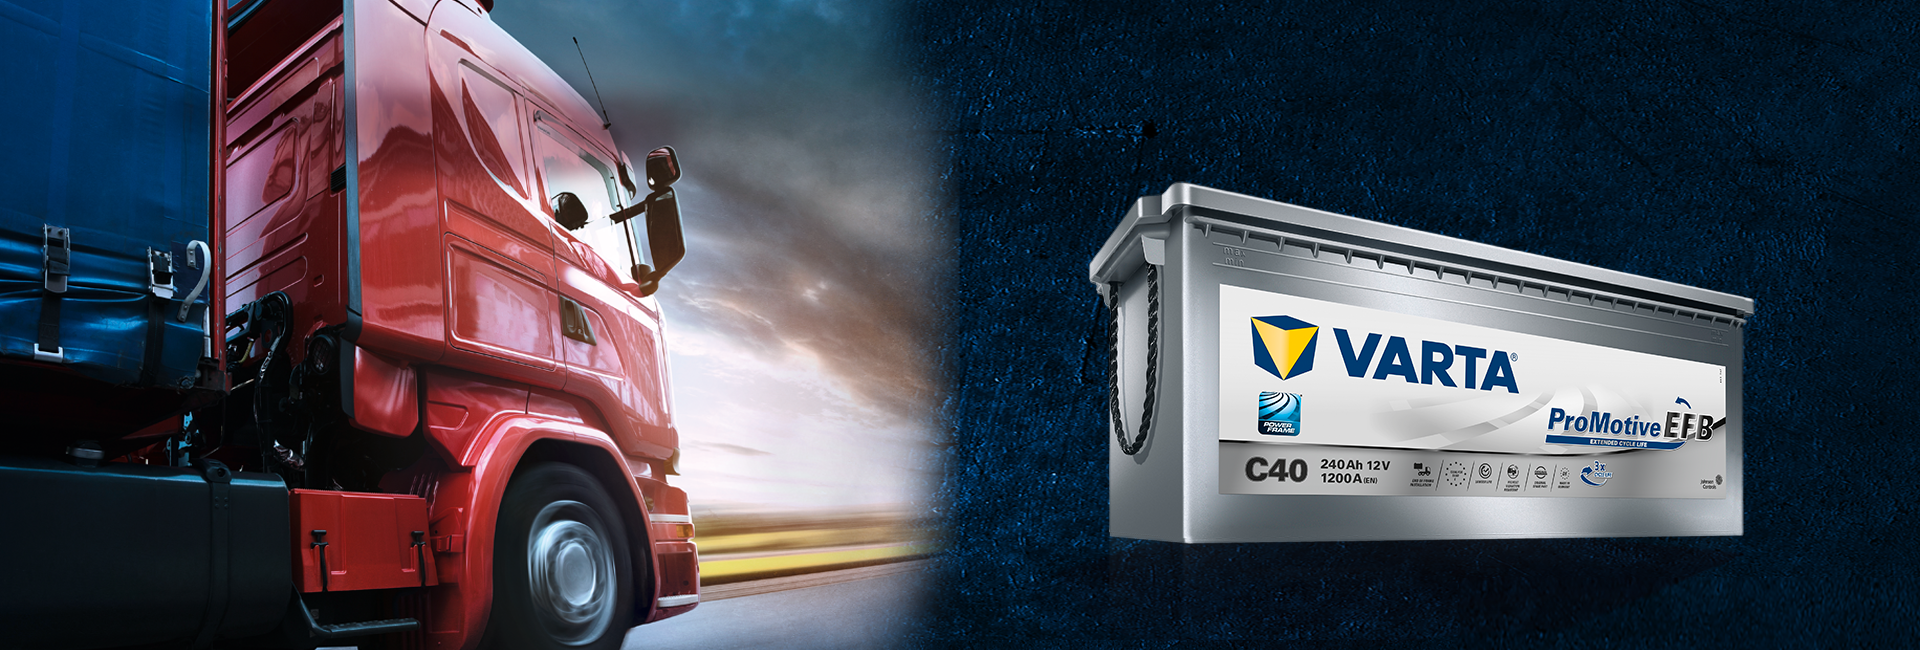 ffafba236810 VARTA® automotive batteries - Get your battery from the global ...